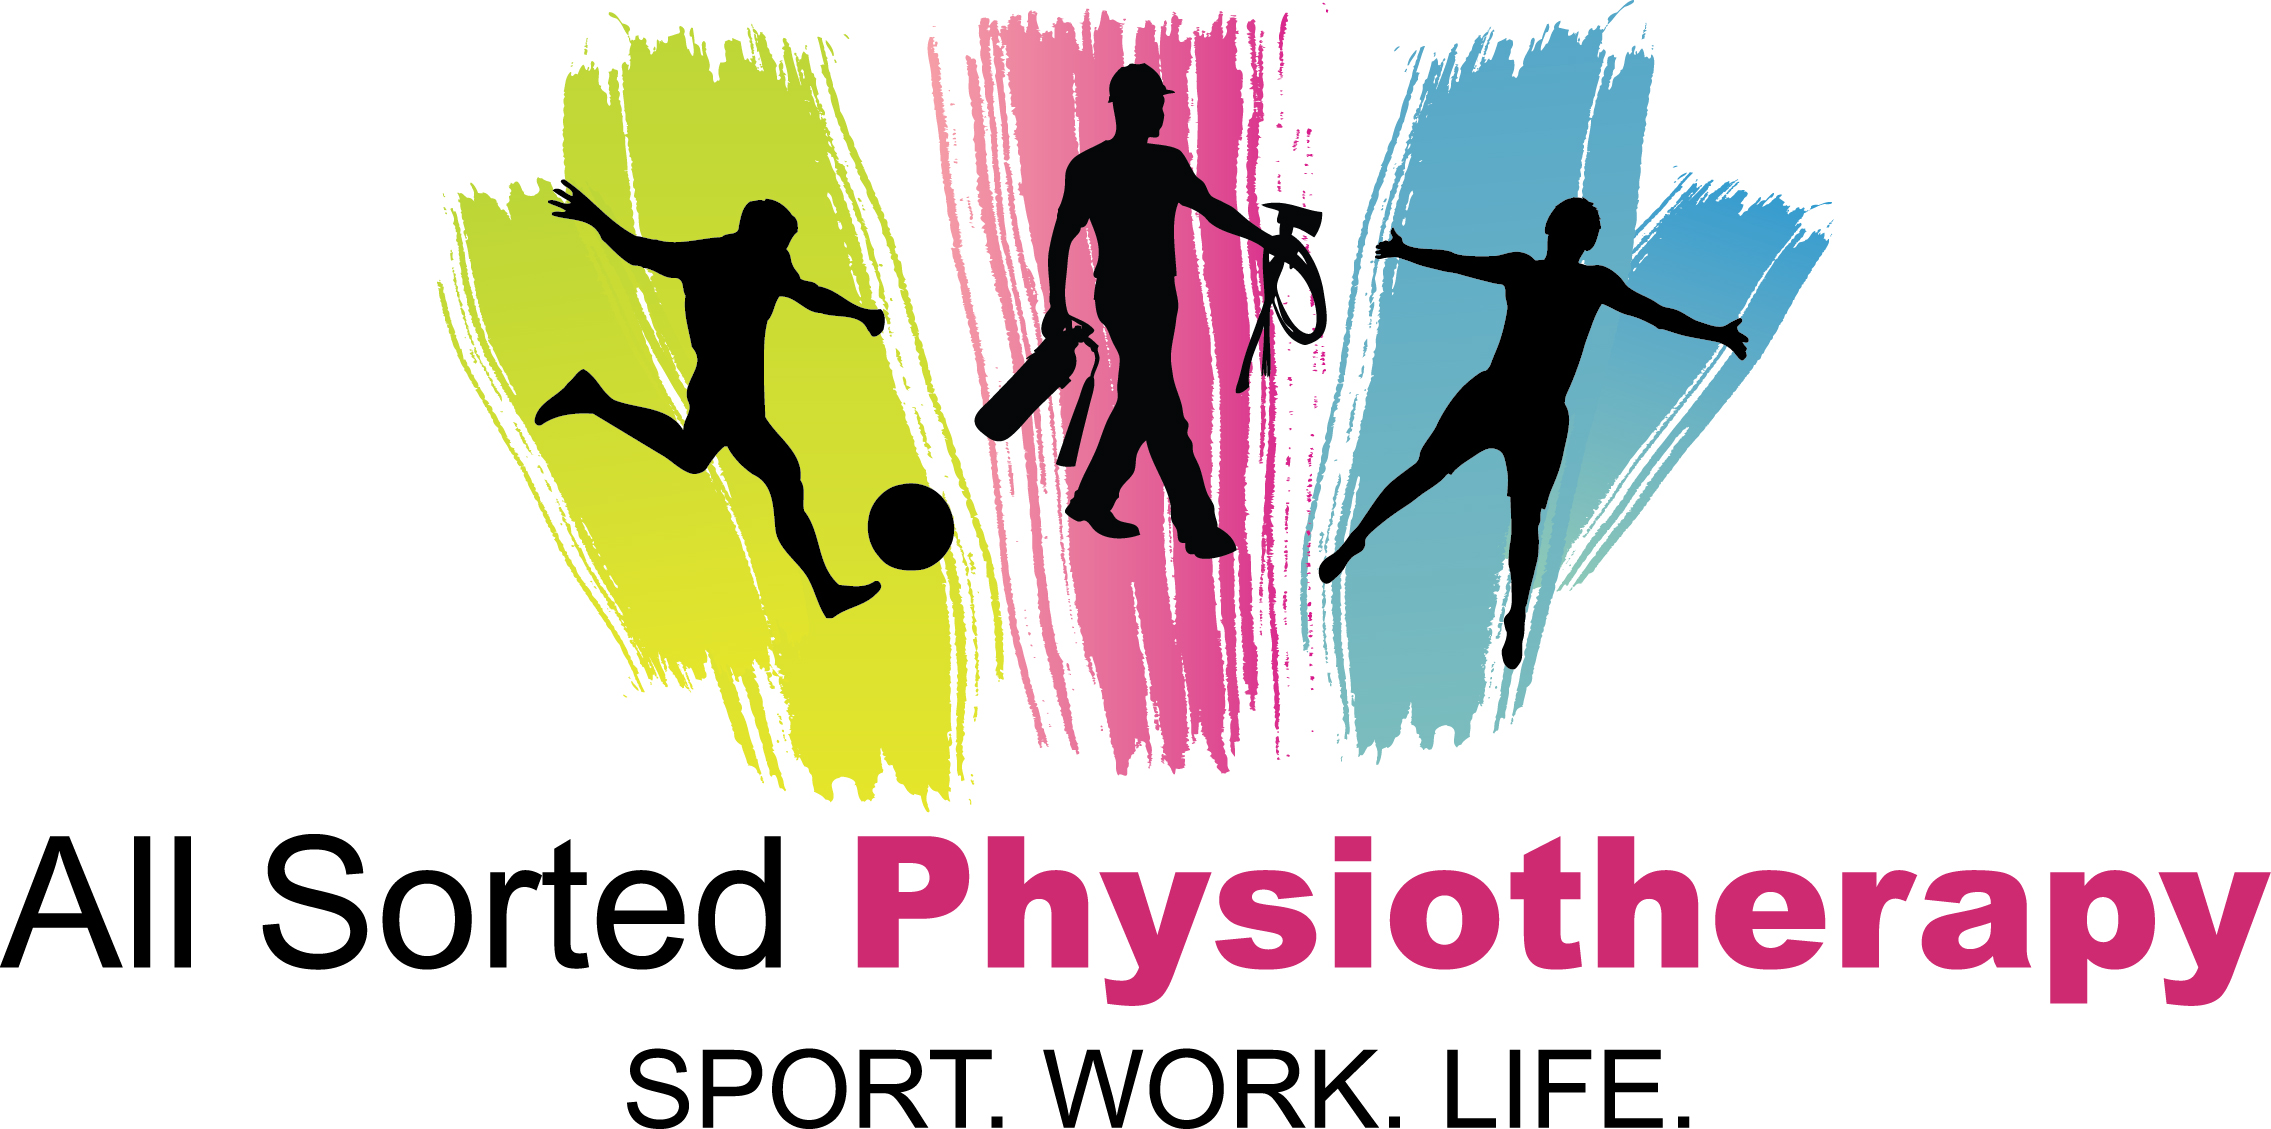 All Sorted Physiotherapy